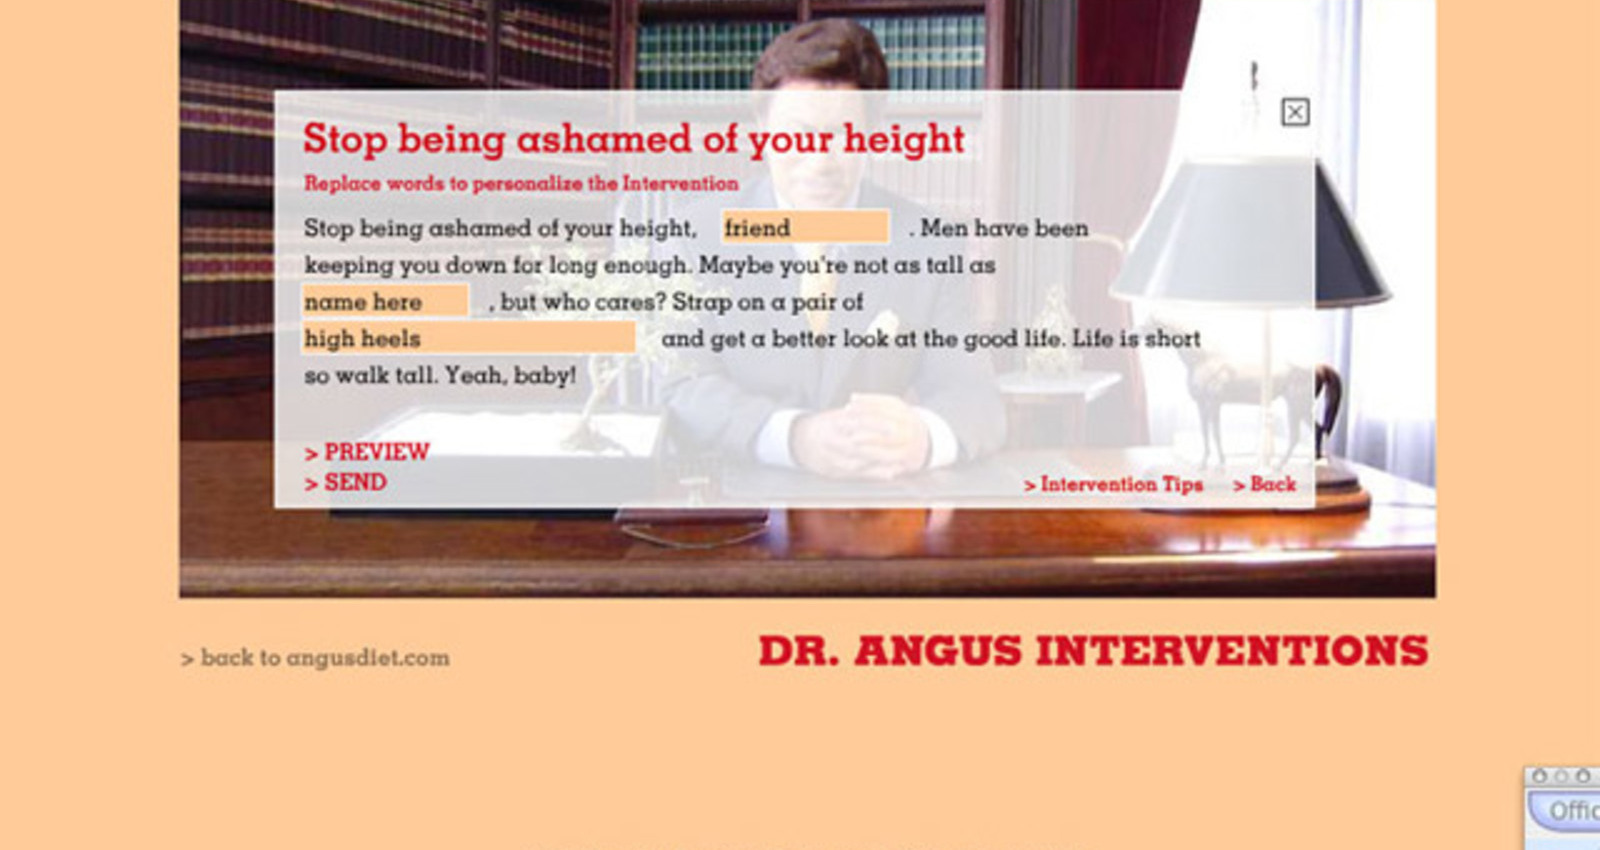 Angus Interventions